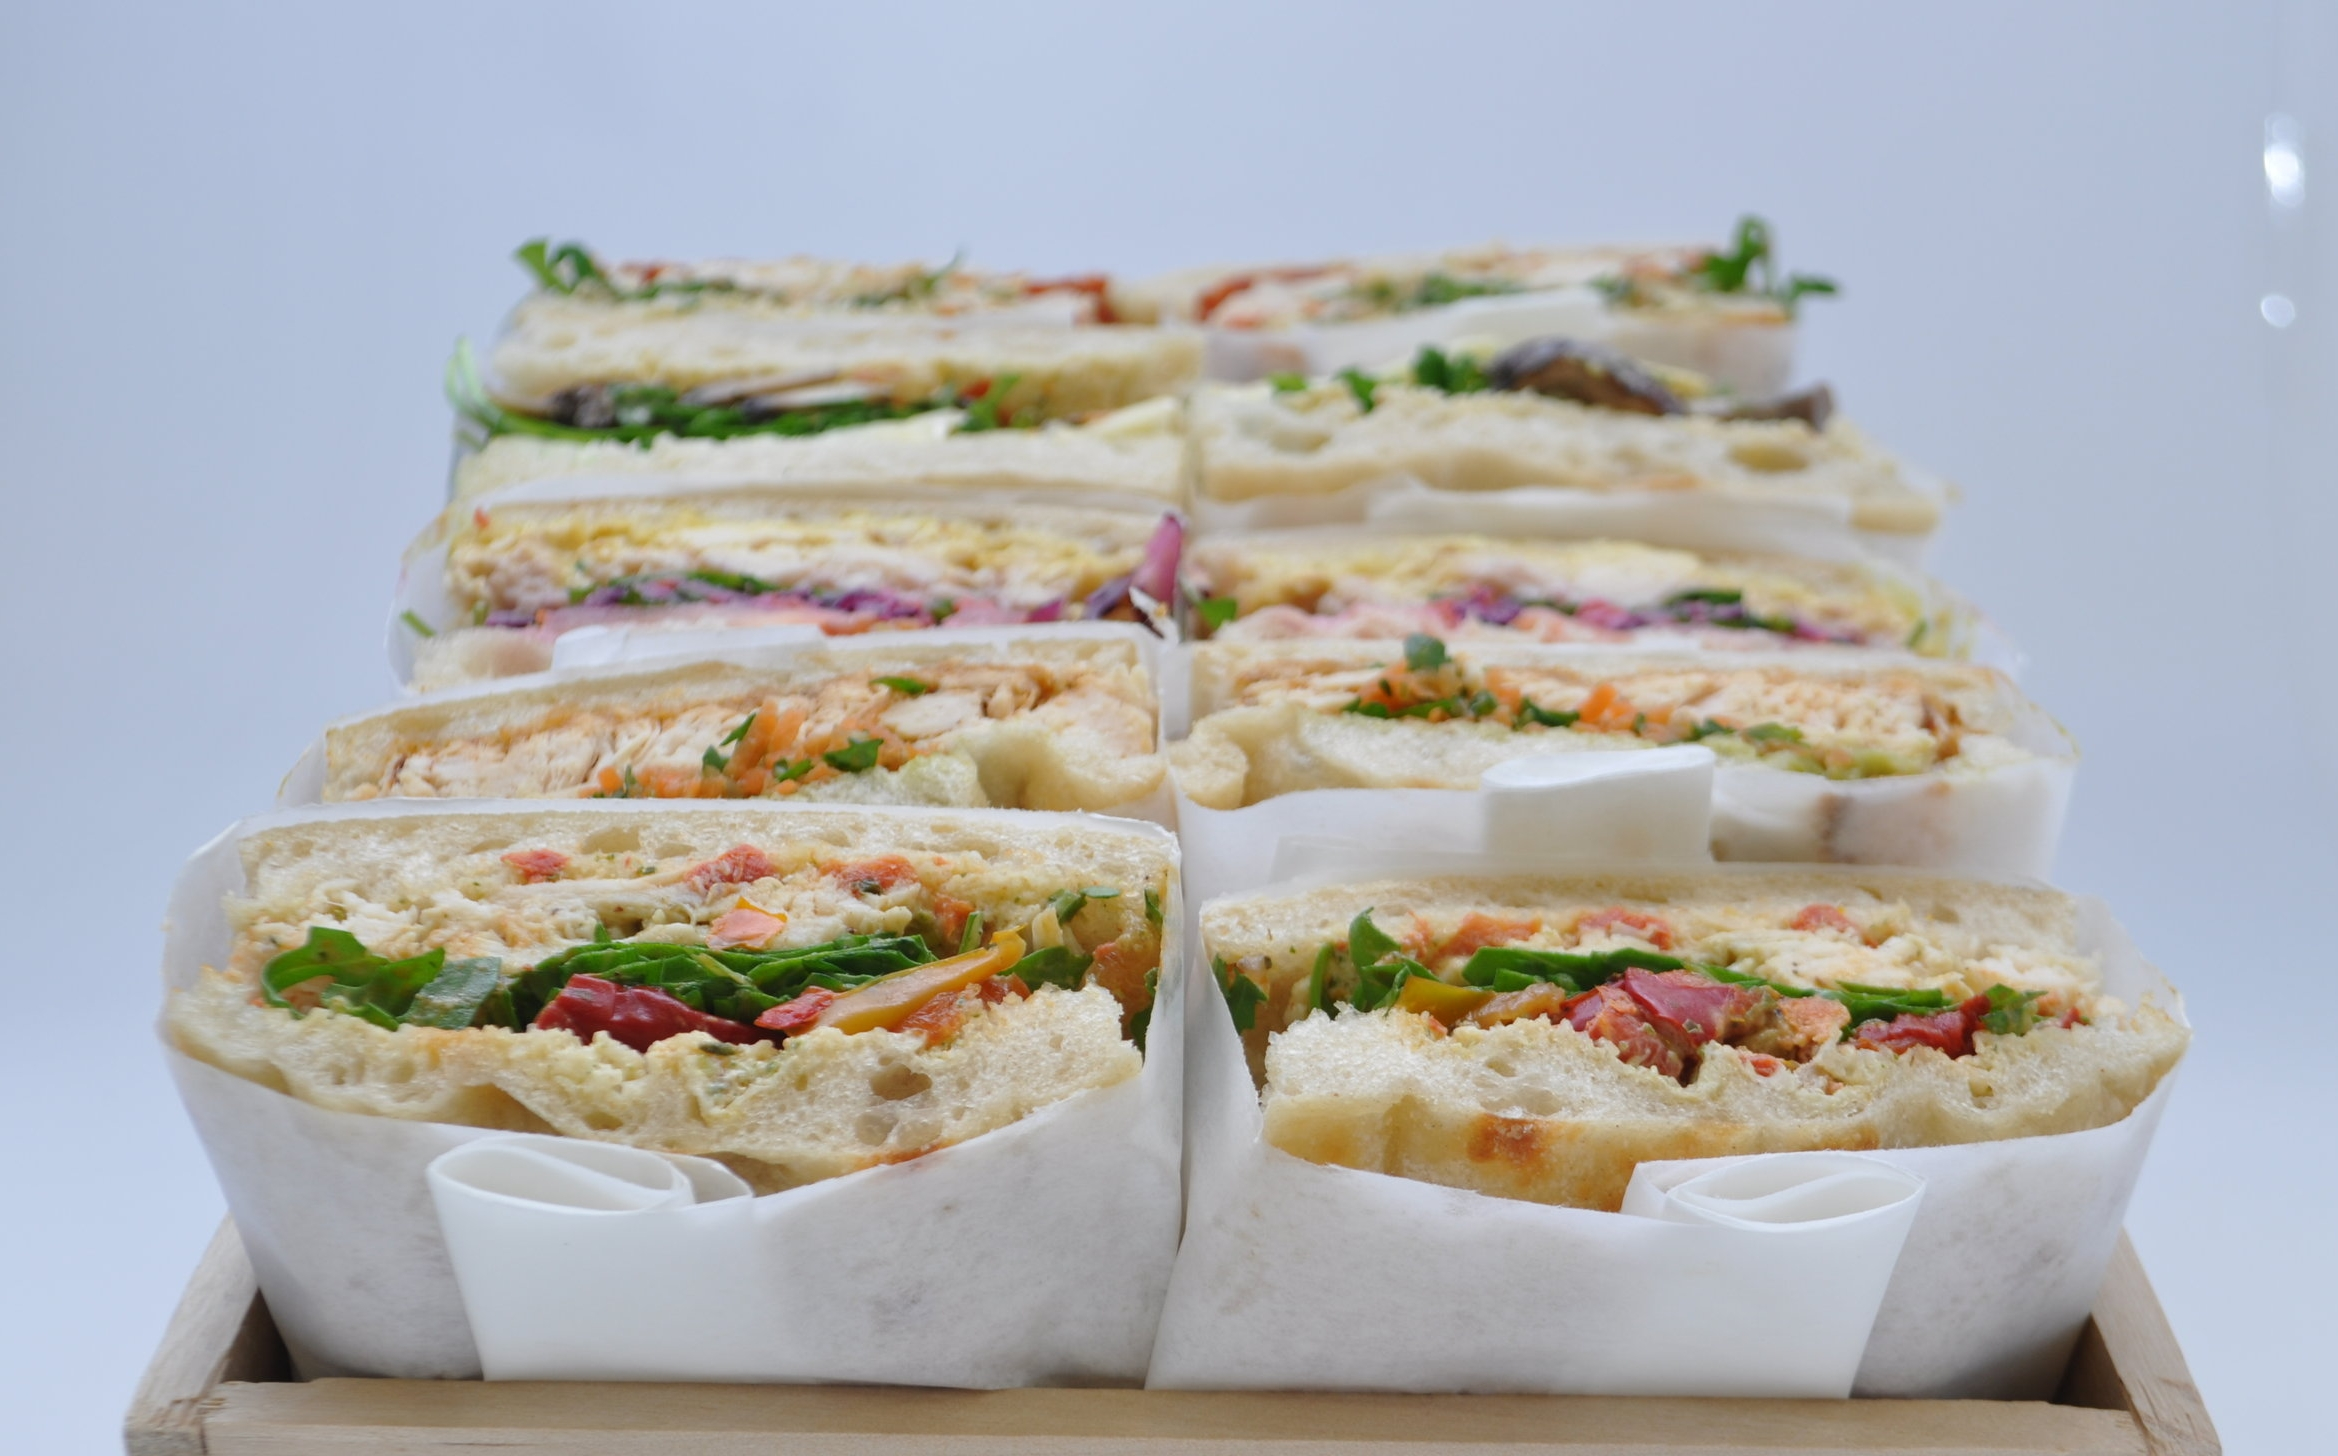 CATERING   Each order is custom made on the day required to ensure the freshest possible experience (ask your current supplier whether they do that).  Sandwiches, wraps and salads with a full range of sweet & savoury sides.